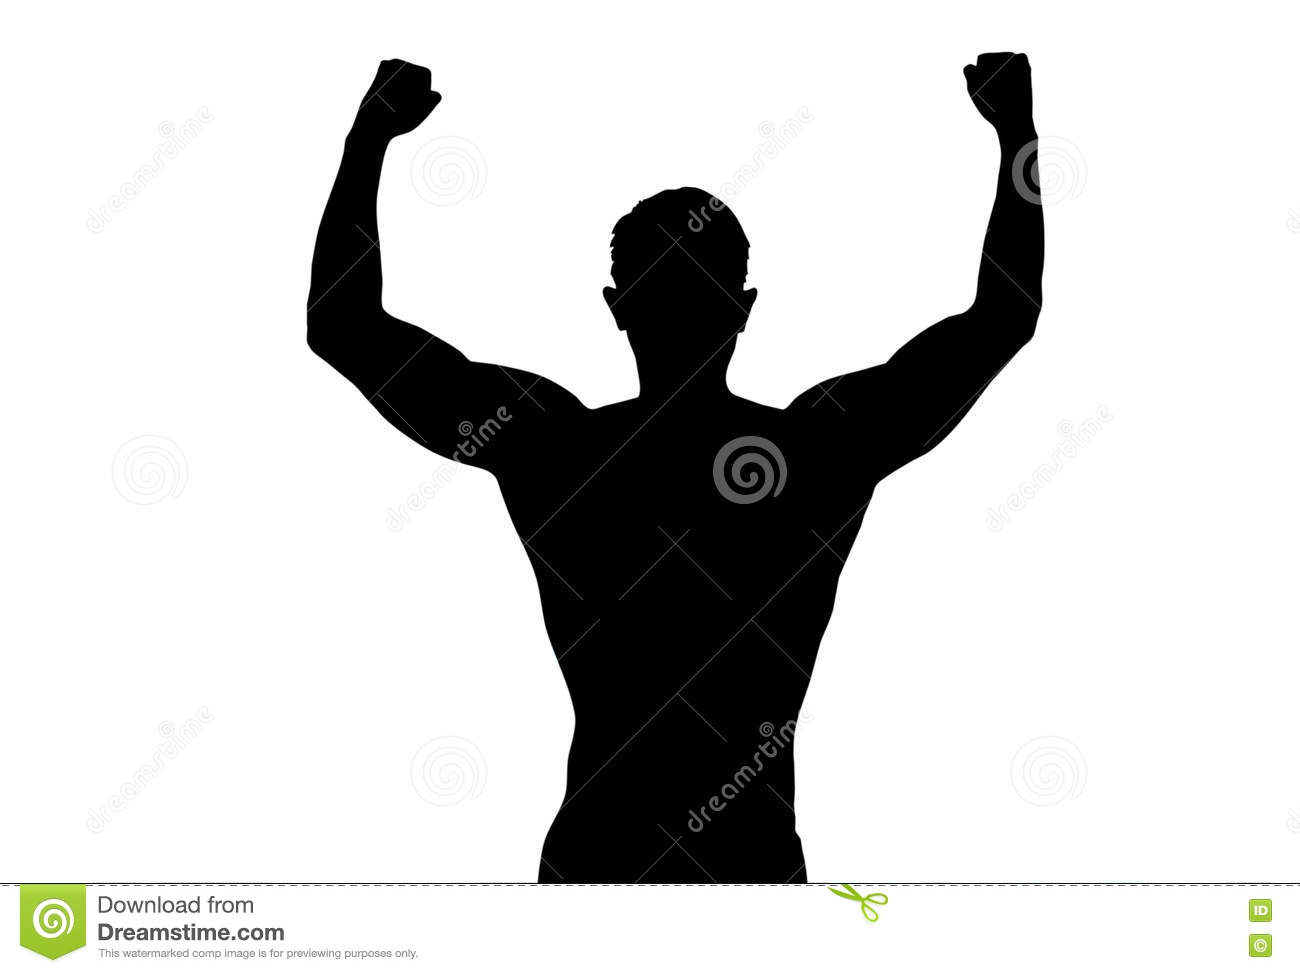 Silhouette back strong sport man outstretched arms show posing fitness body on white background